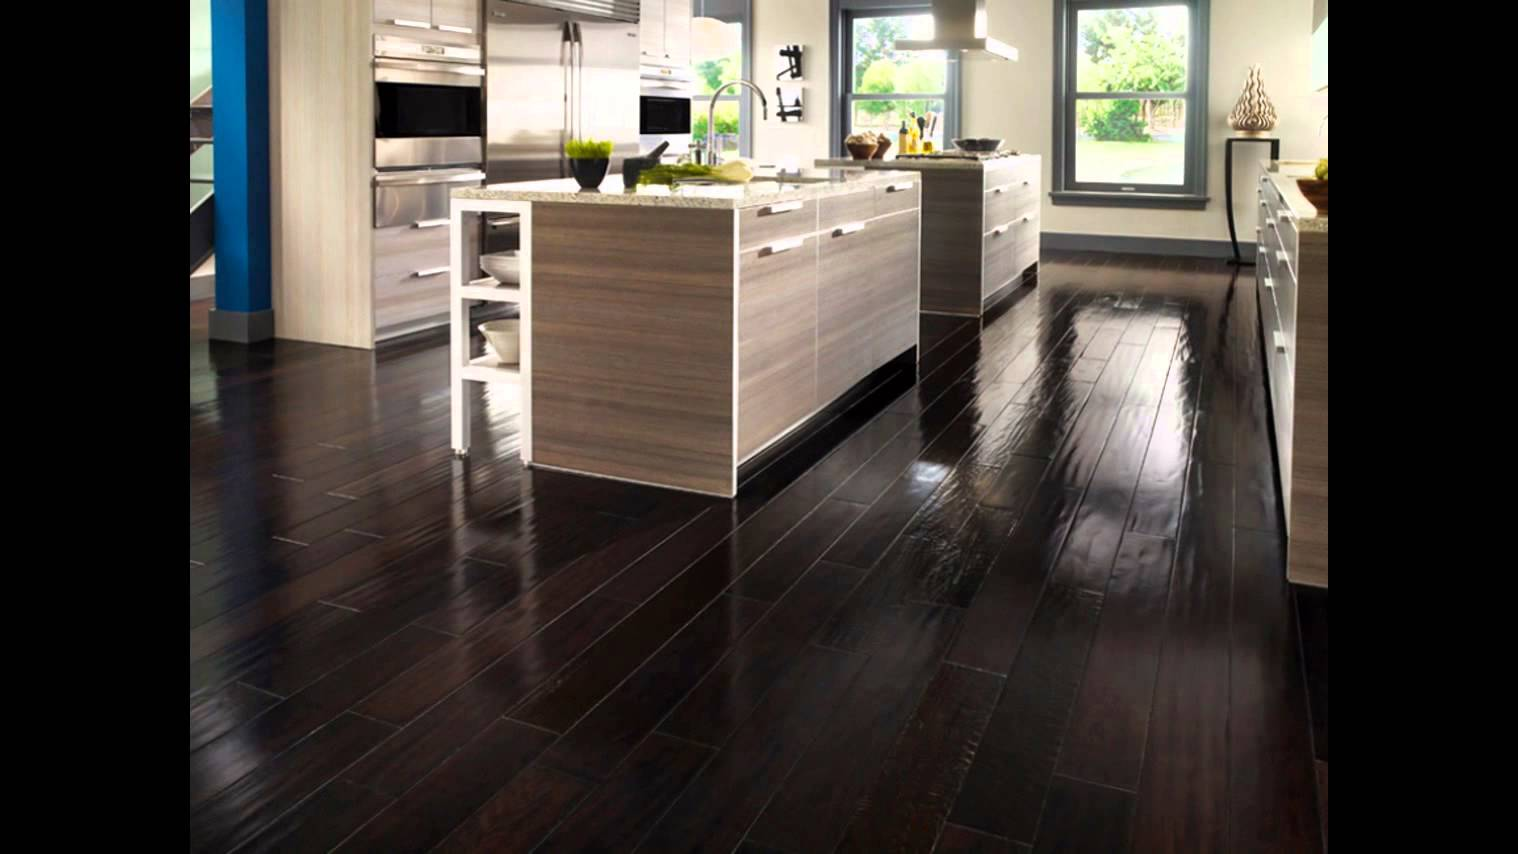 dark hardwood floors | dark hardwood floors and dark kitchen cabinets IYLXODF